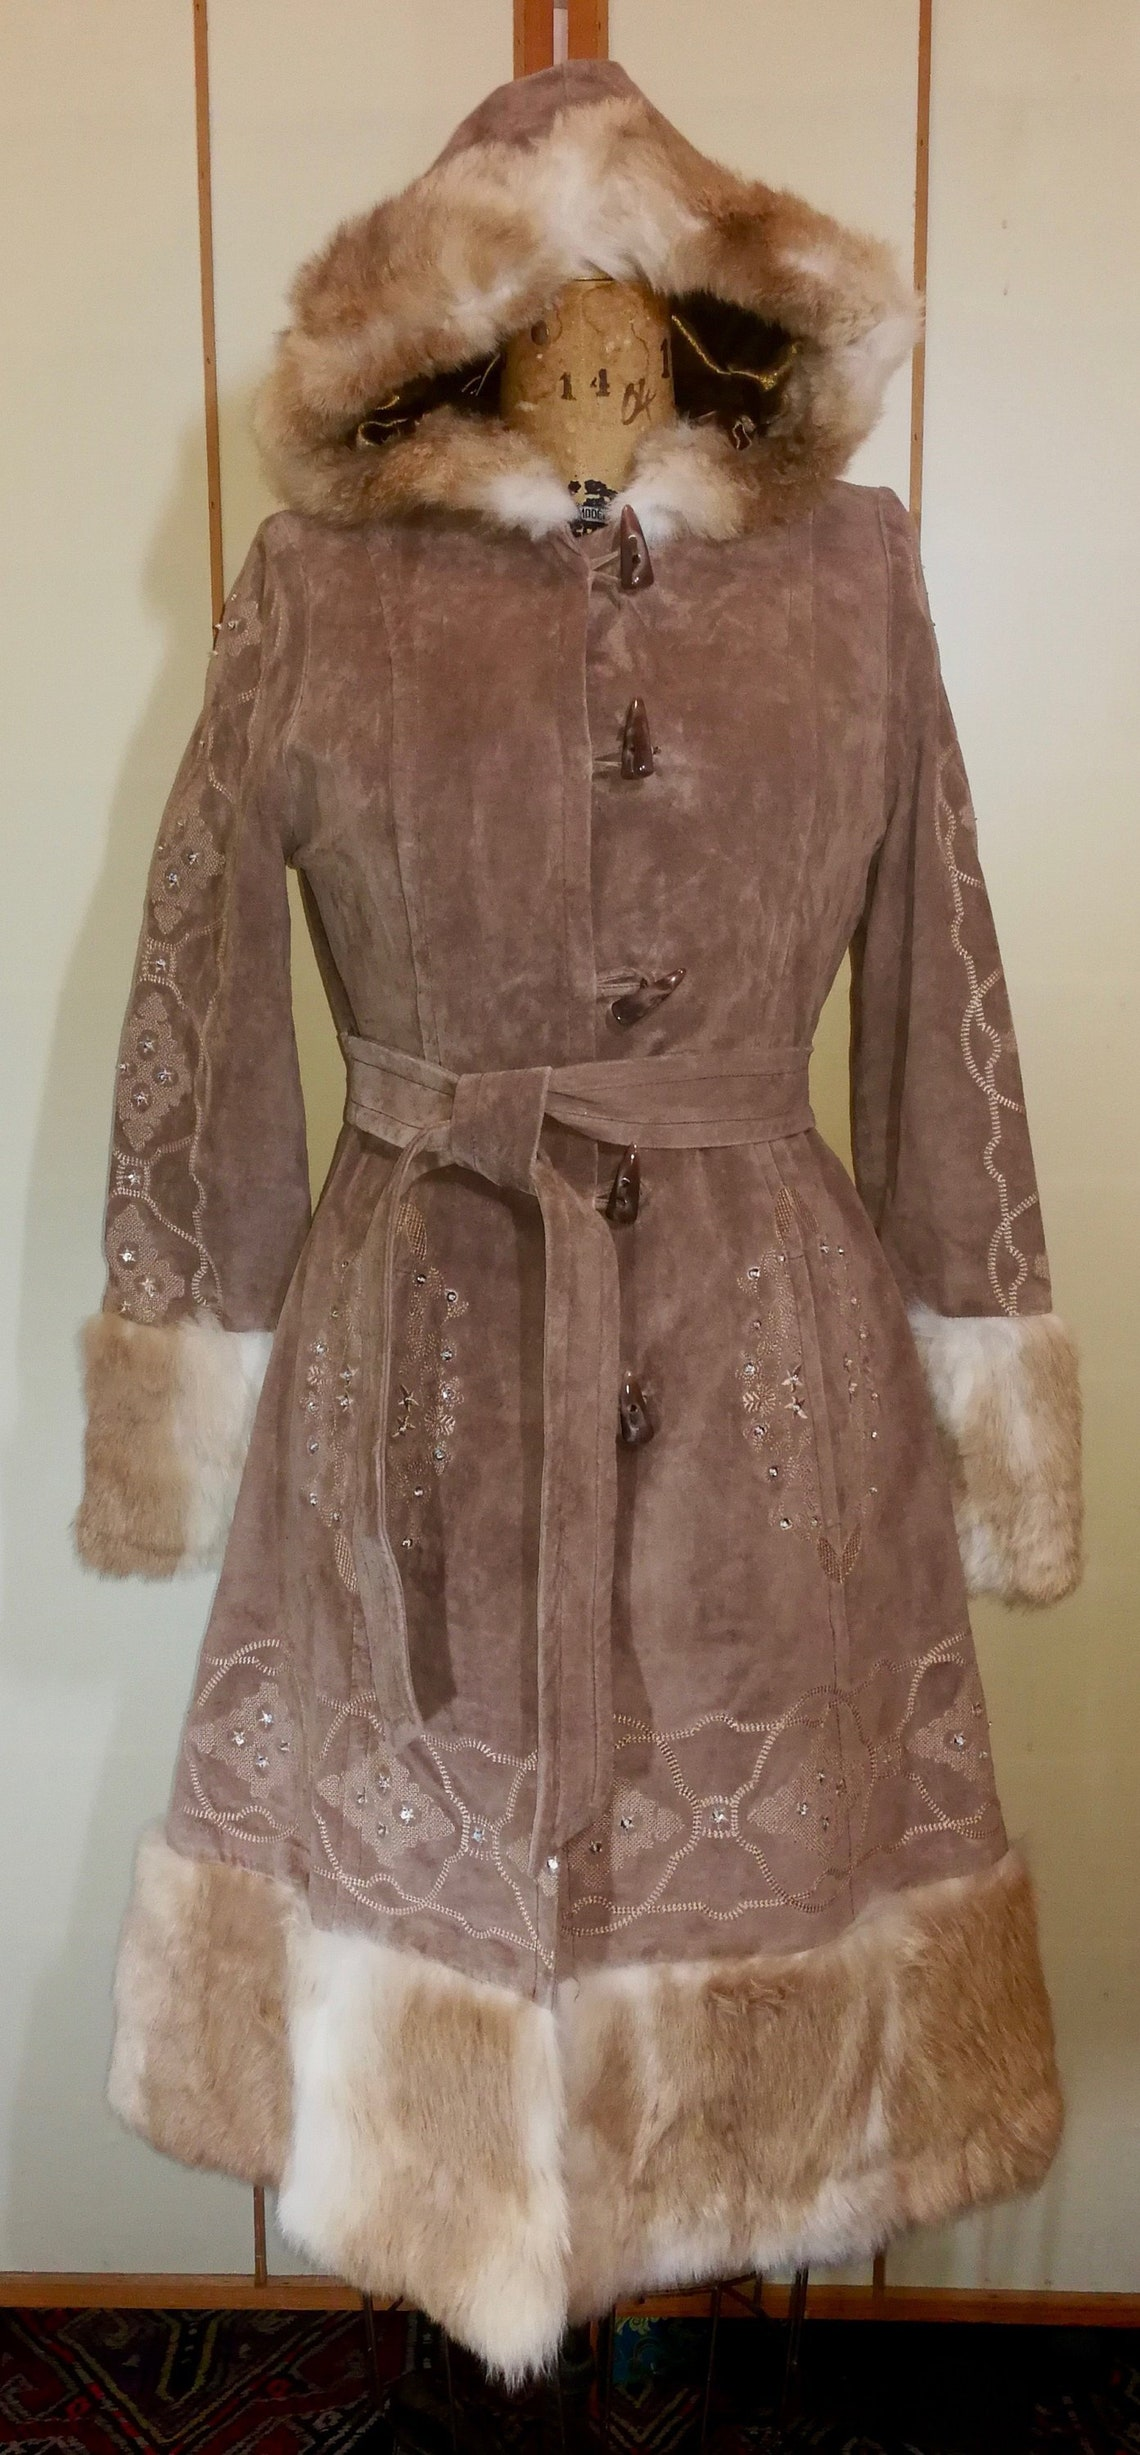 Suede Fur Penny Lane Afghan Hooded Ombre Coat Embroidered Almost Famous Boho Russian Princess Fit And Flare Cut Small Petite